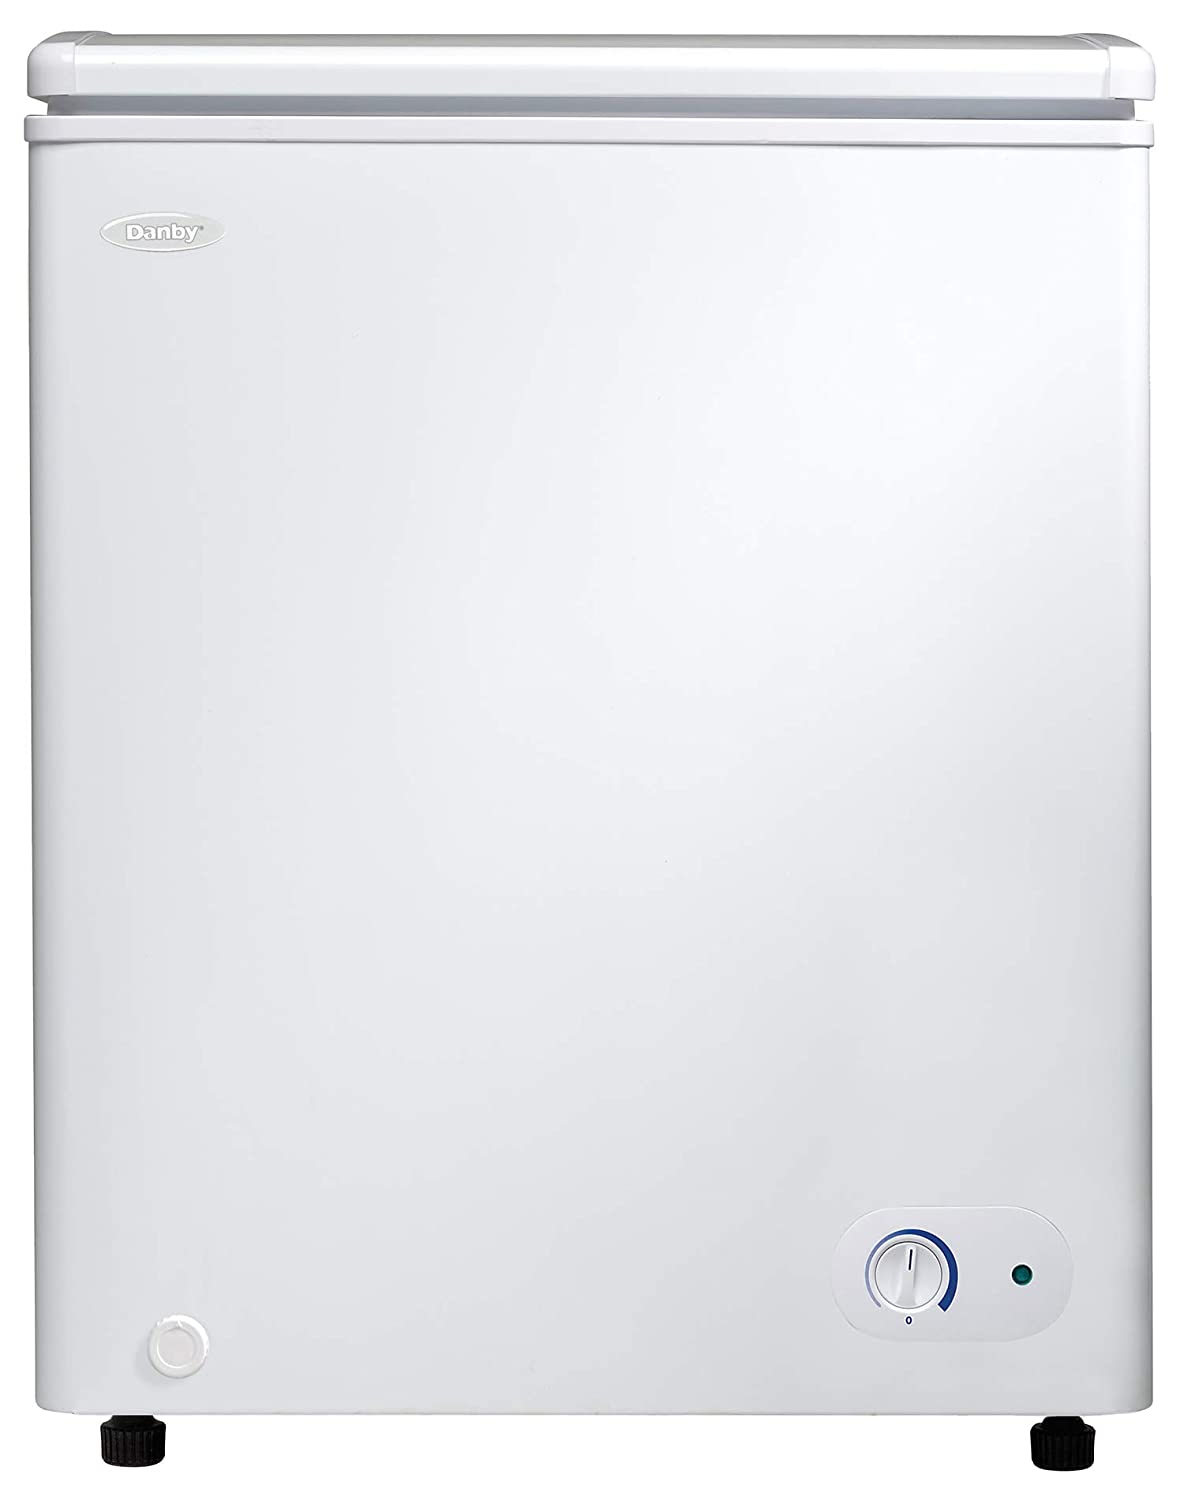 Top 10 Best Chest Freezer Reviews in 2020 2